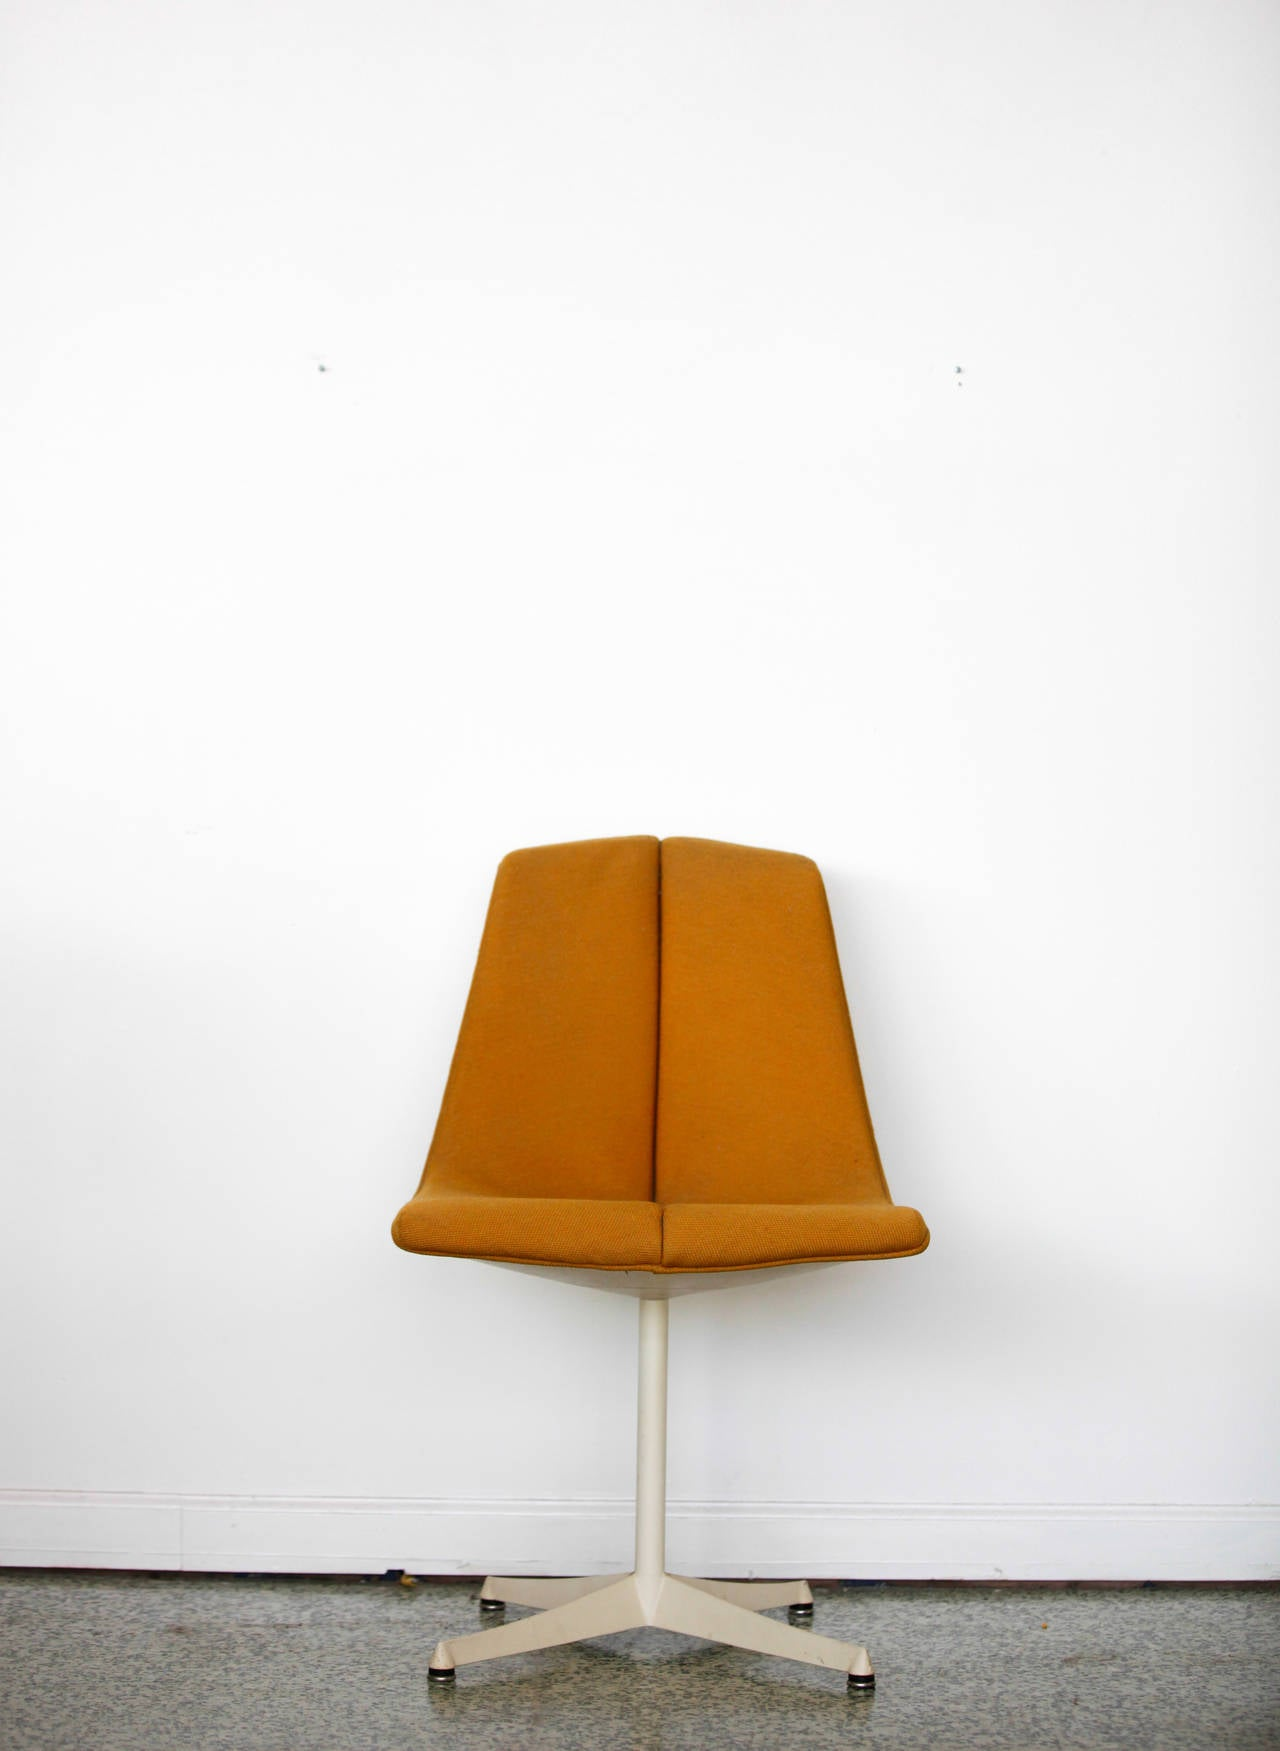 A chair designed by Richard Schultz for Knoll's Art Metal series in 1960s. Original orange tweed upholstery with a four star aluminum swivel base.